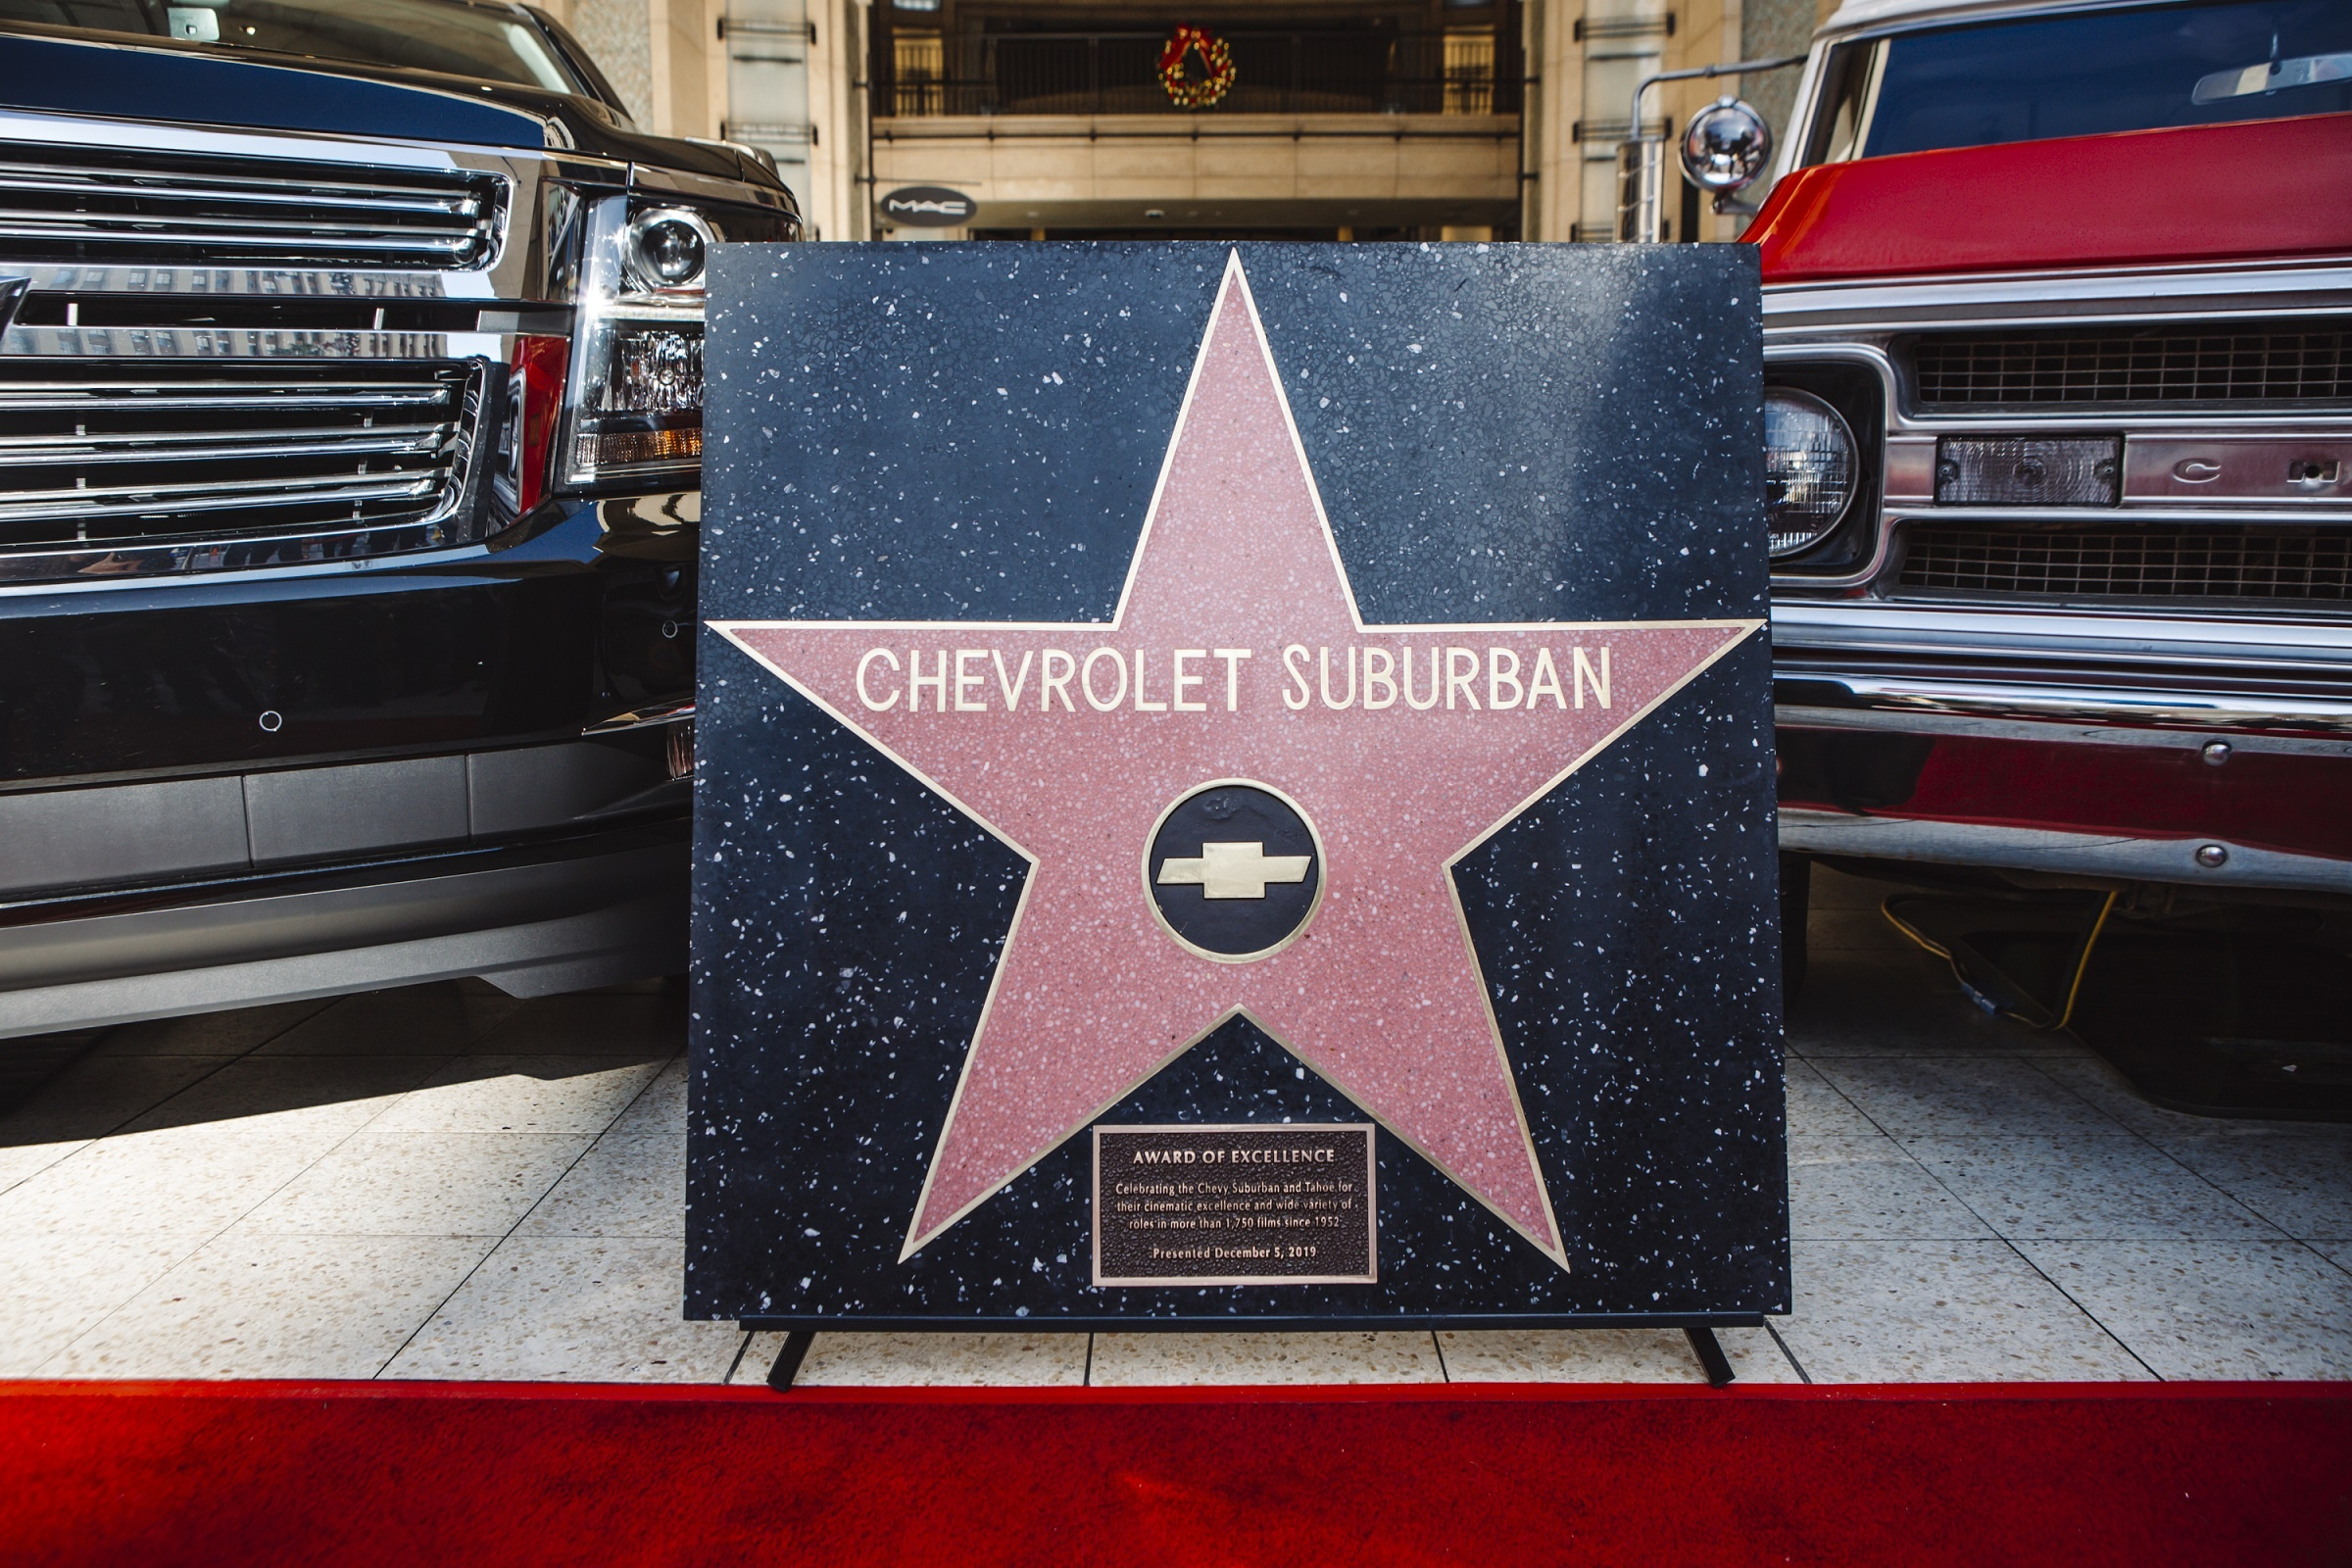 Chevrolet Suburban Becomes First Vehicle to Earn Star at Hollywood Boulevard